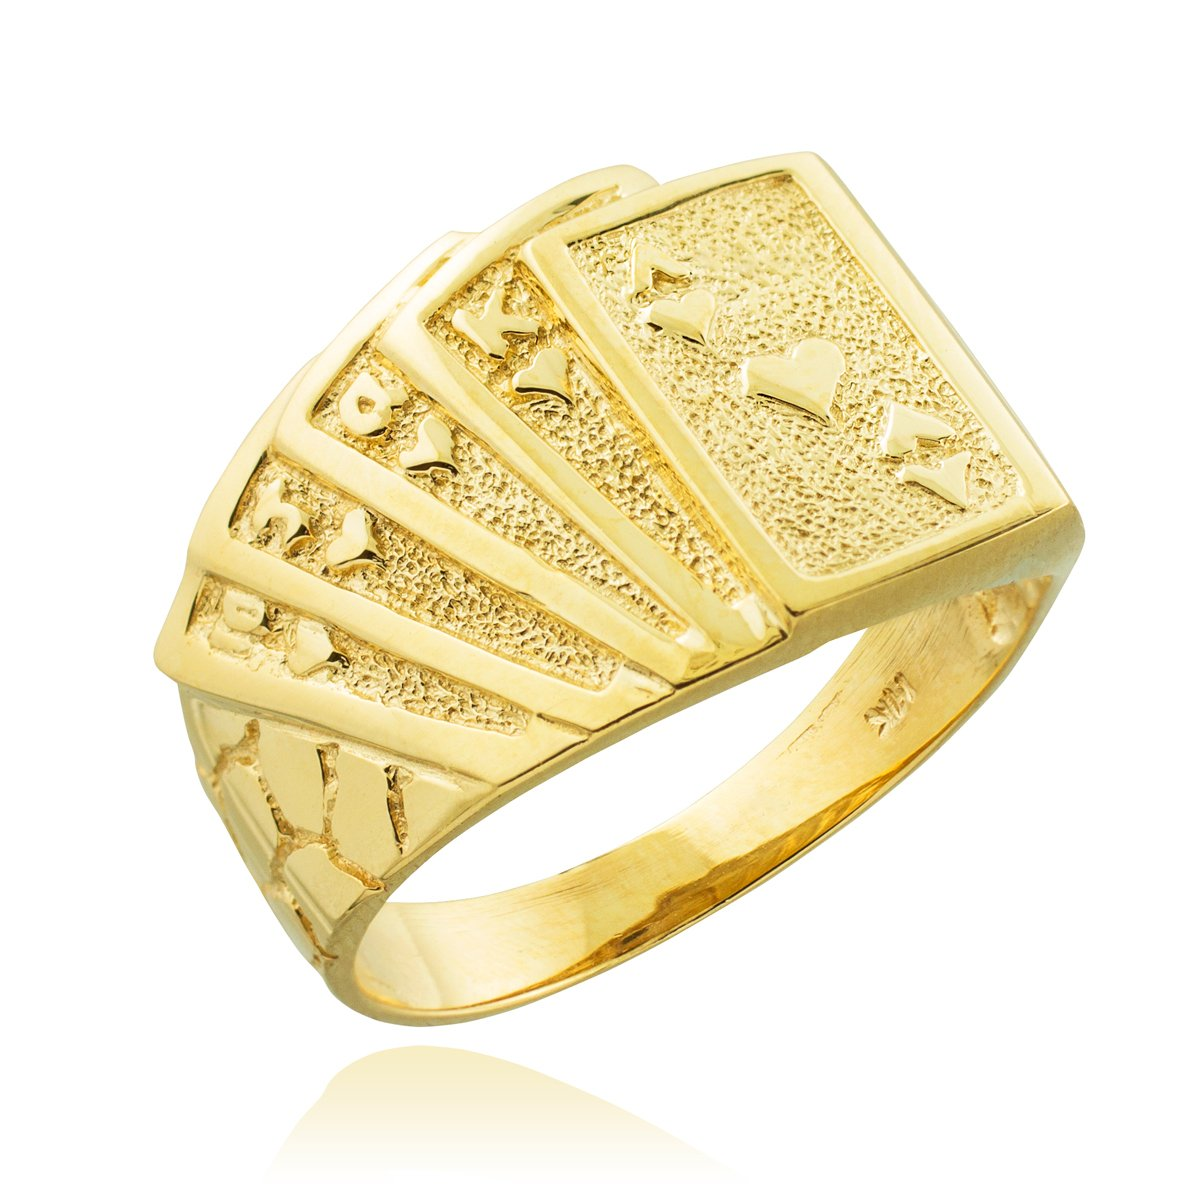 Men's 10k Yellow Gold Lucky Nugget Band Royal Flush of Hearts Poker Ring (Size 8)